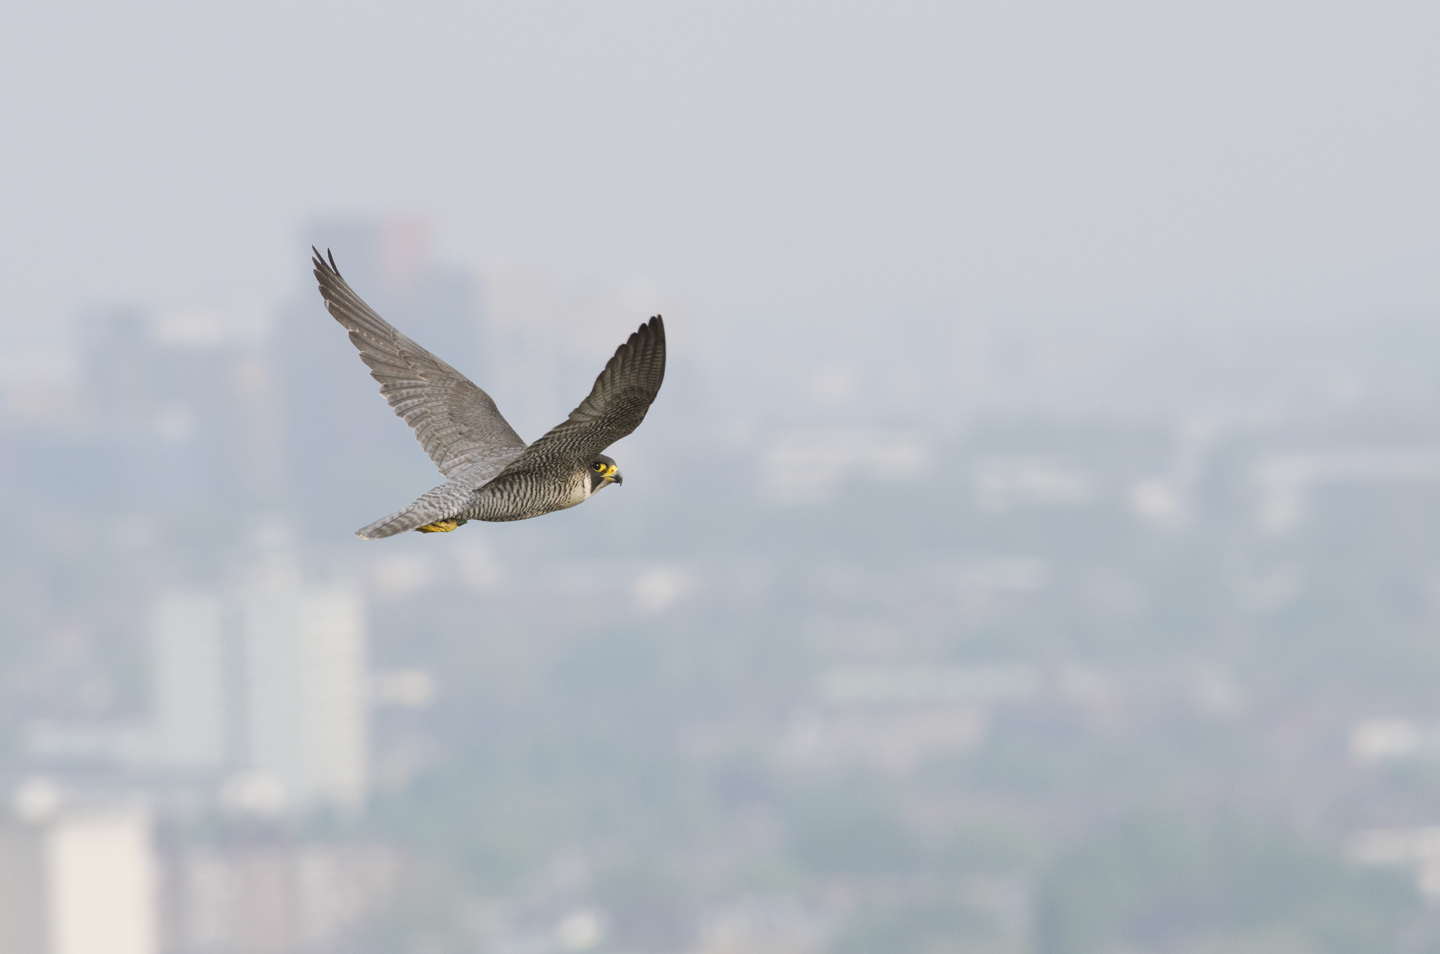 Peregrines are not entirely free from persecution in cities and pigeon fanciers can occasionally be a problem, but they are comparatively safe and an increase in numbers has meant an increase in understanding